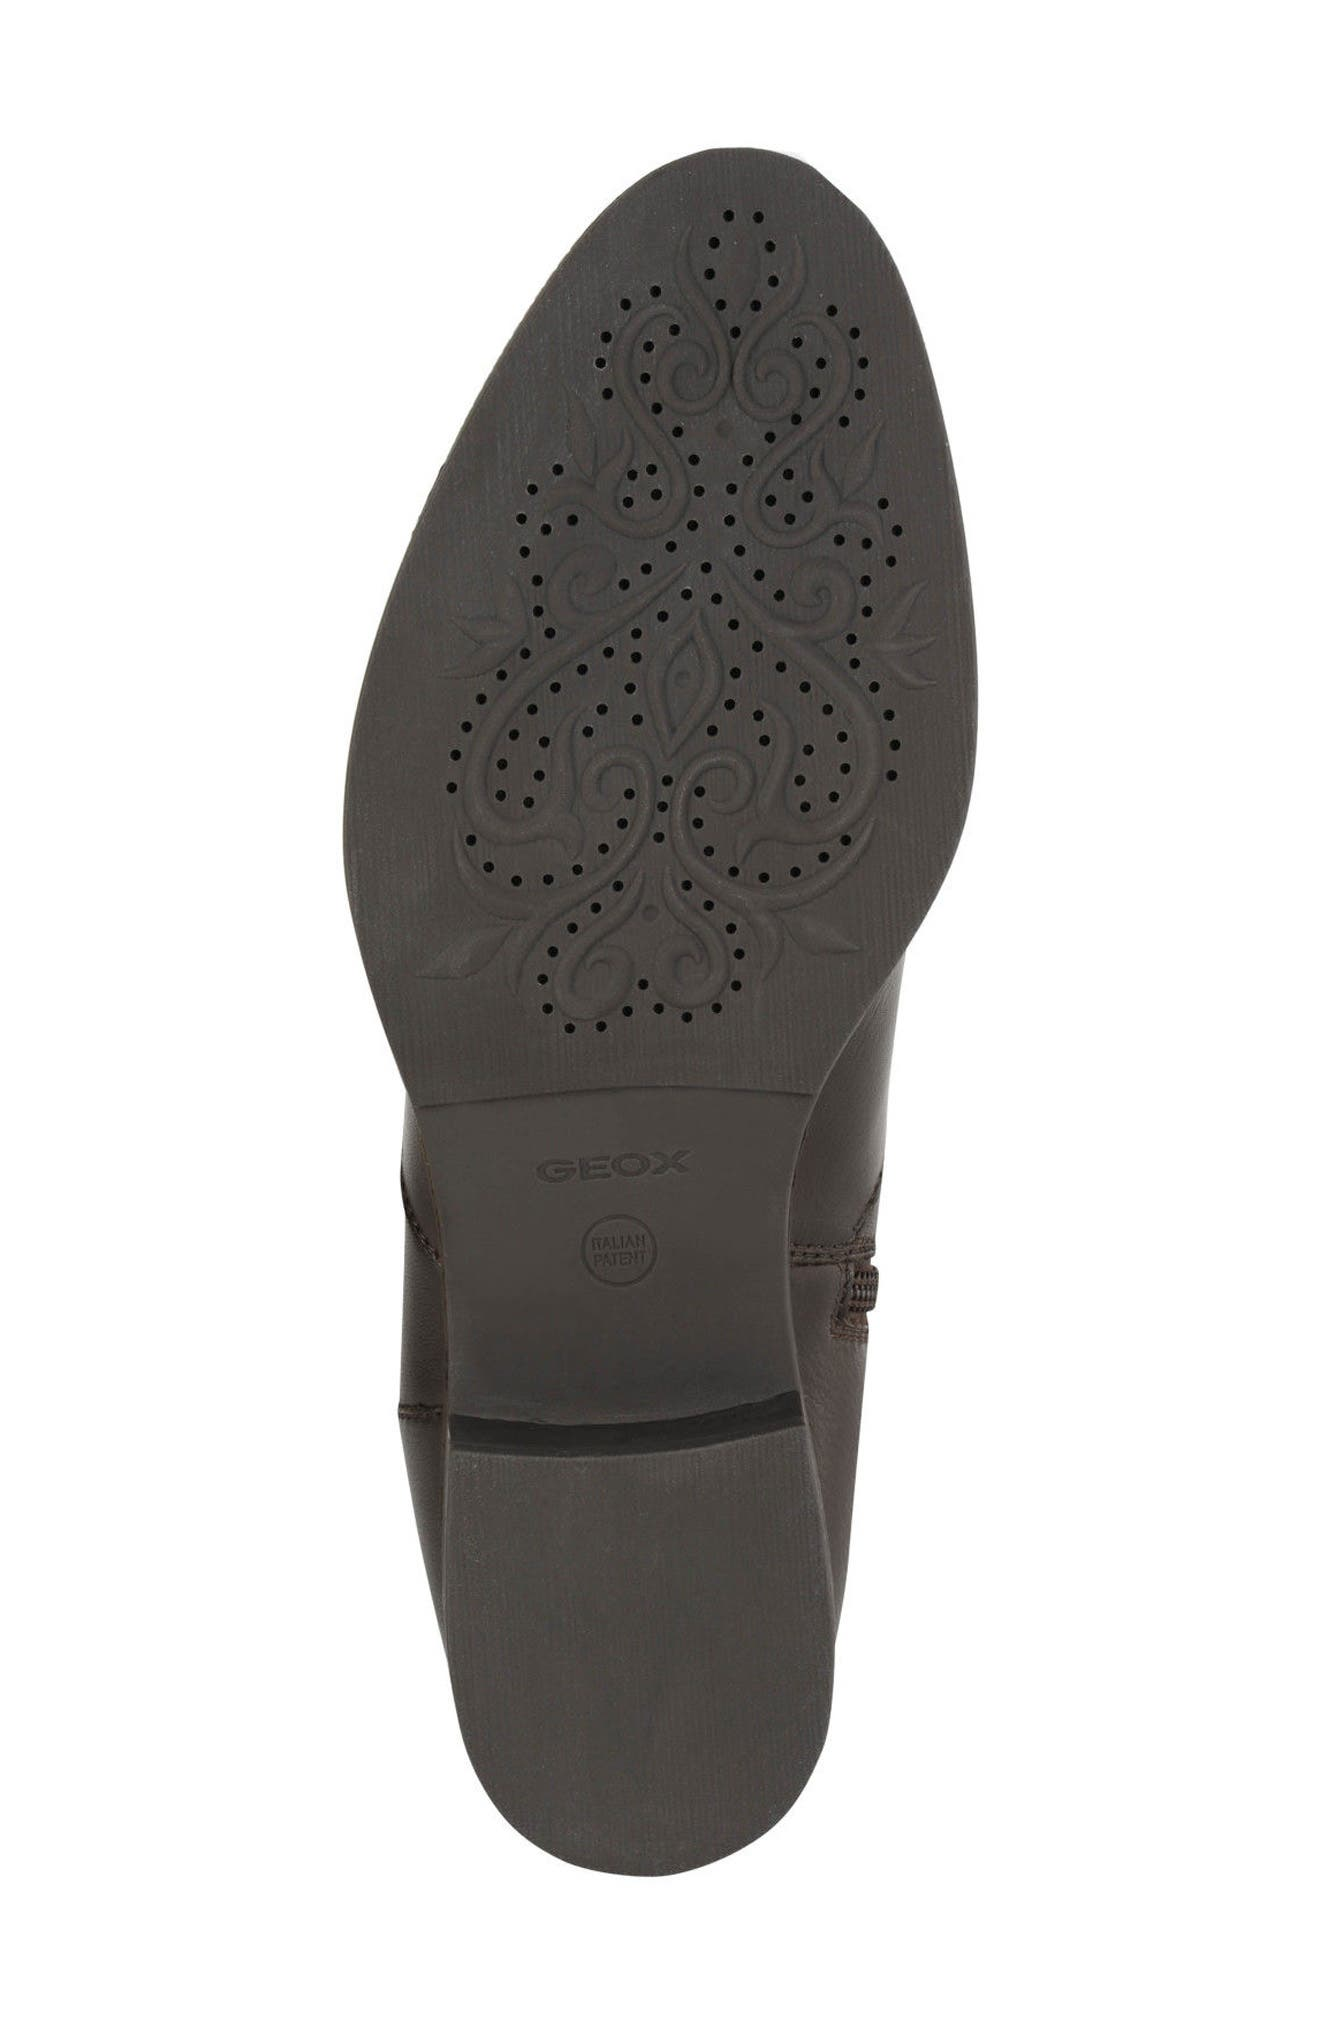 Mendi Tall Boot,                             Alternate thumbnail 5, color,                             Coffee Leather